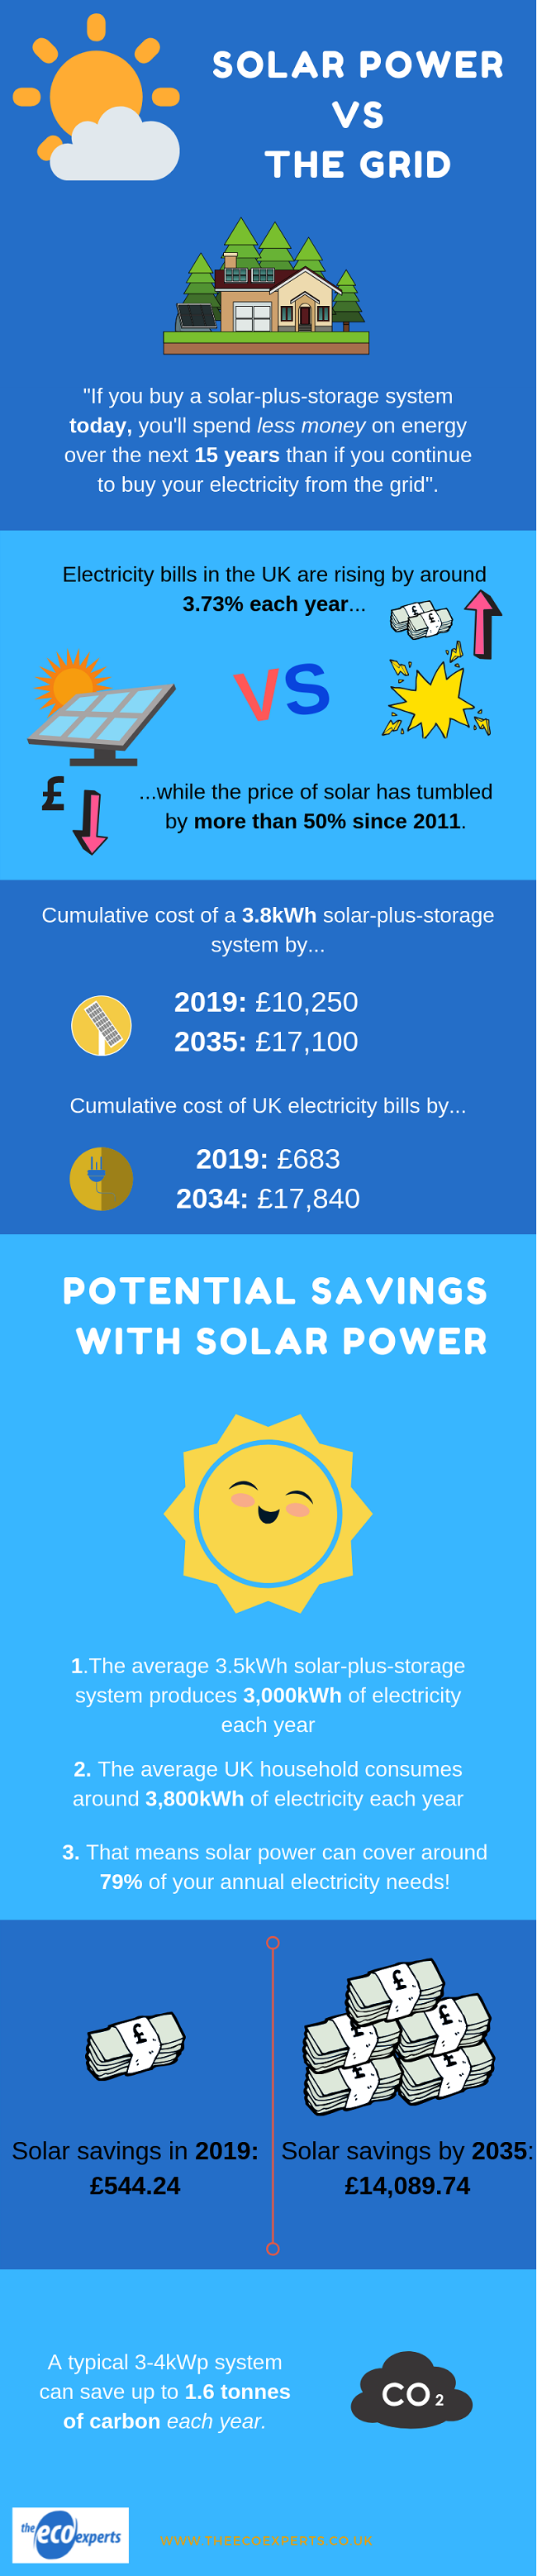 Solar Panels | Are They Worth It? | August 2019